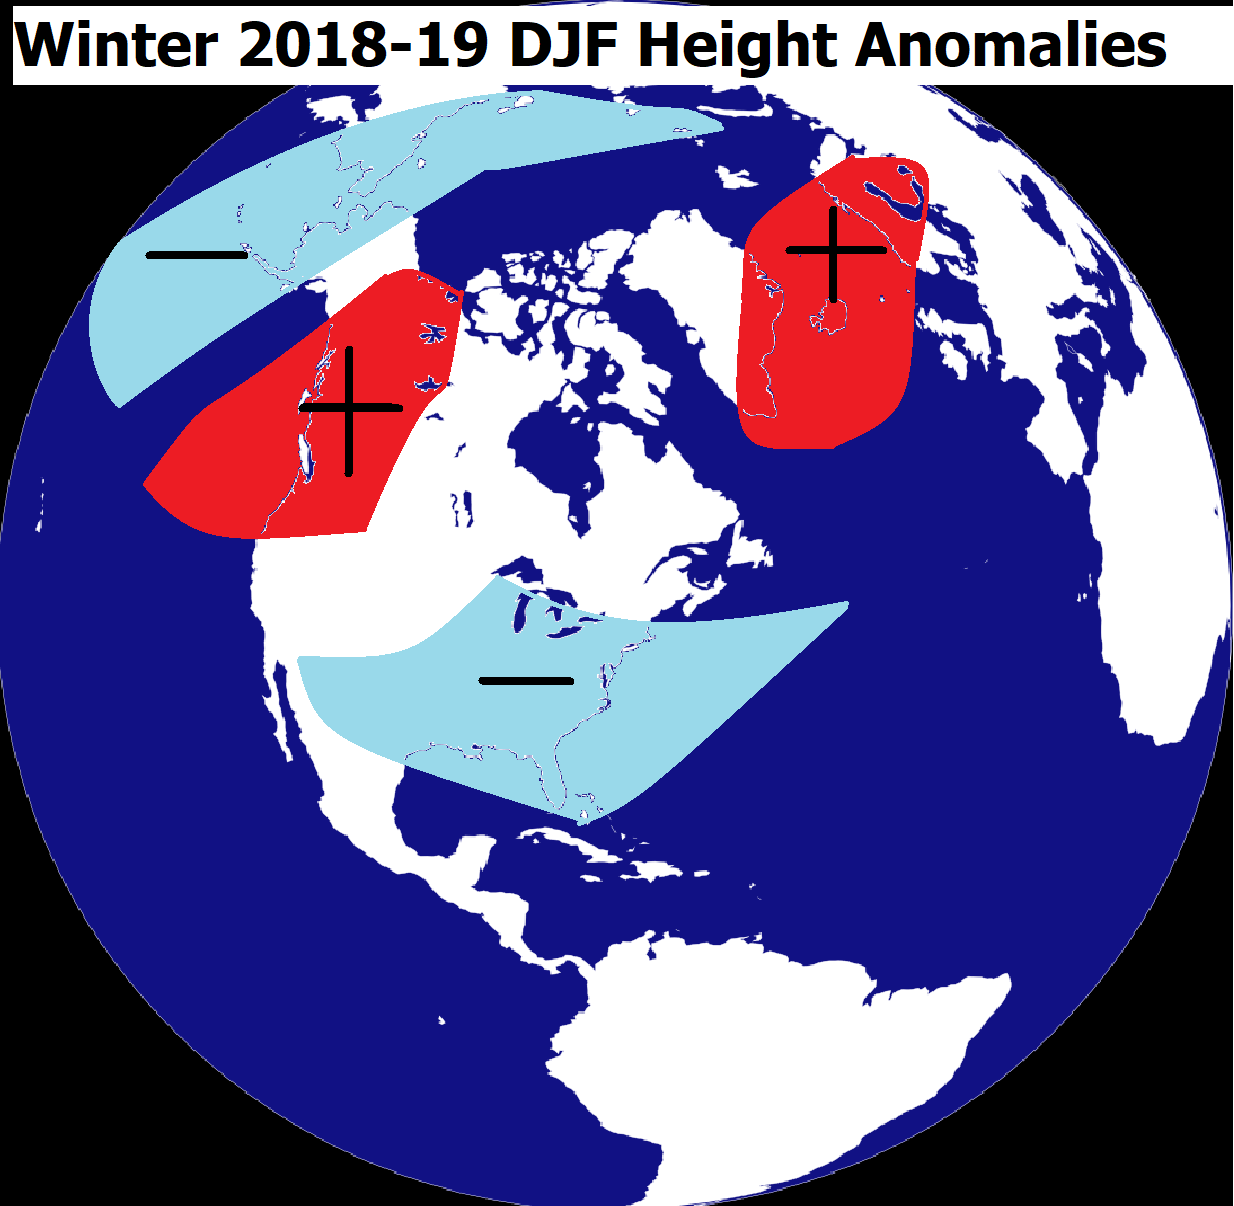 DJF HEIGHT ANOMALY FCST